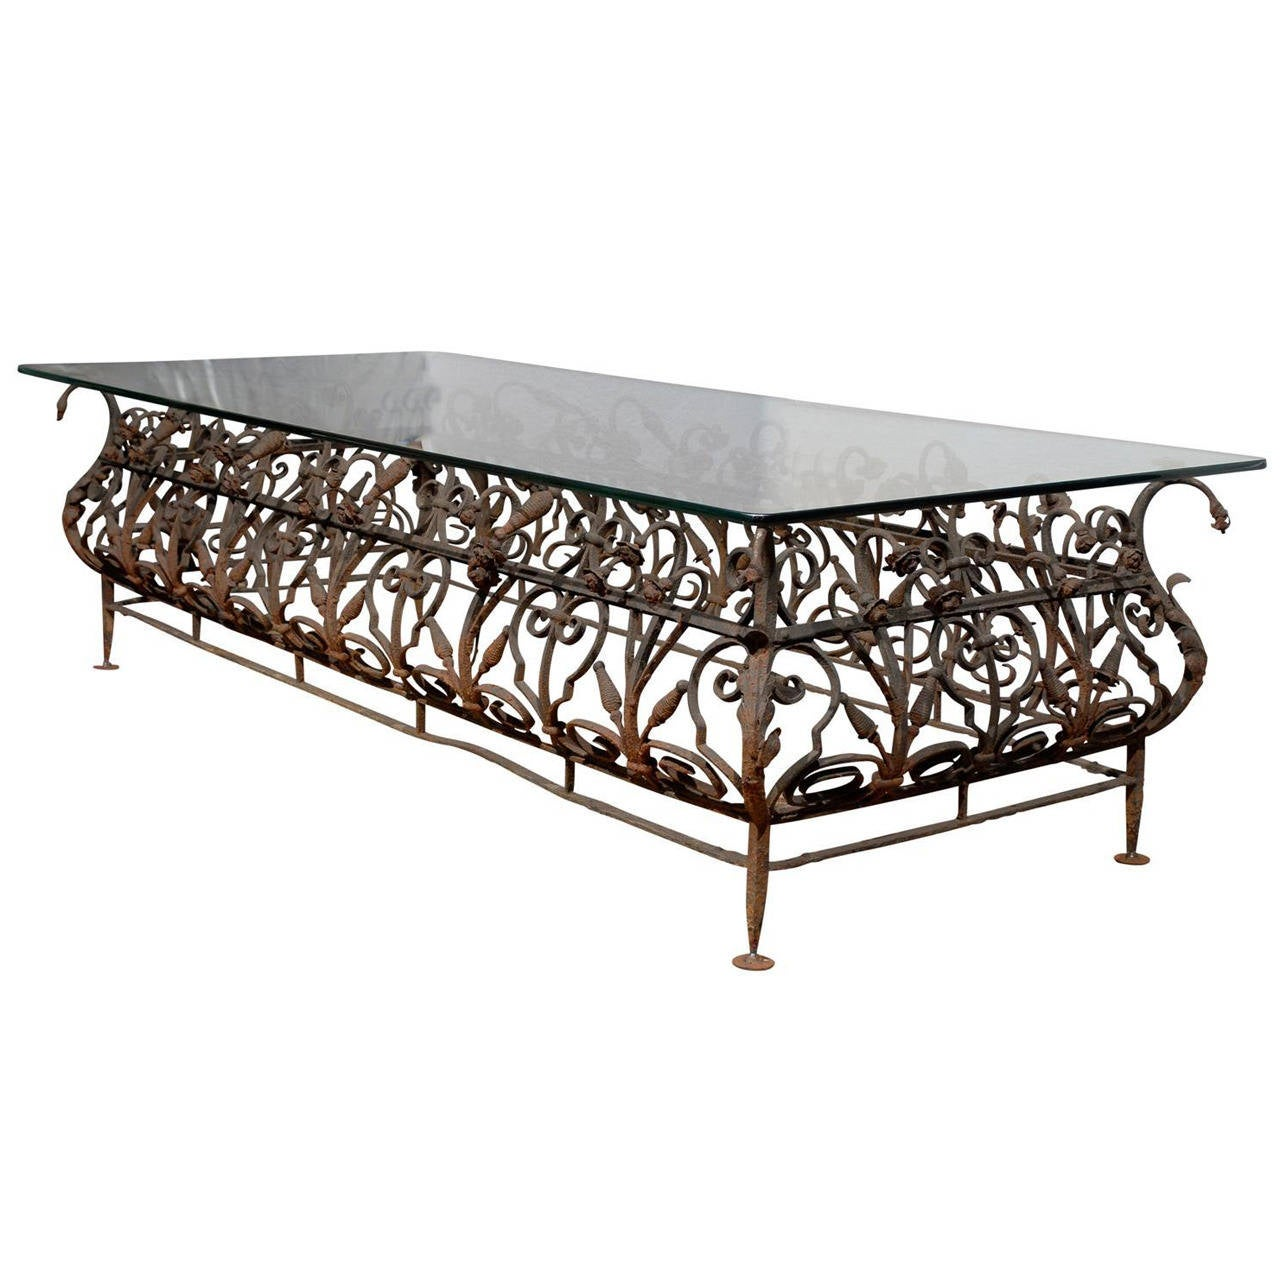 Large Iron And Glass Coffee Or Cocktail Table For Sale At 1stdibs